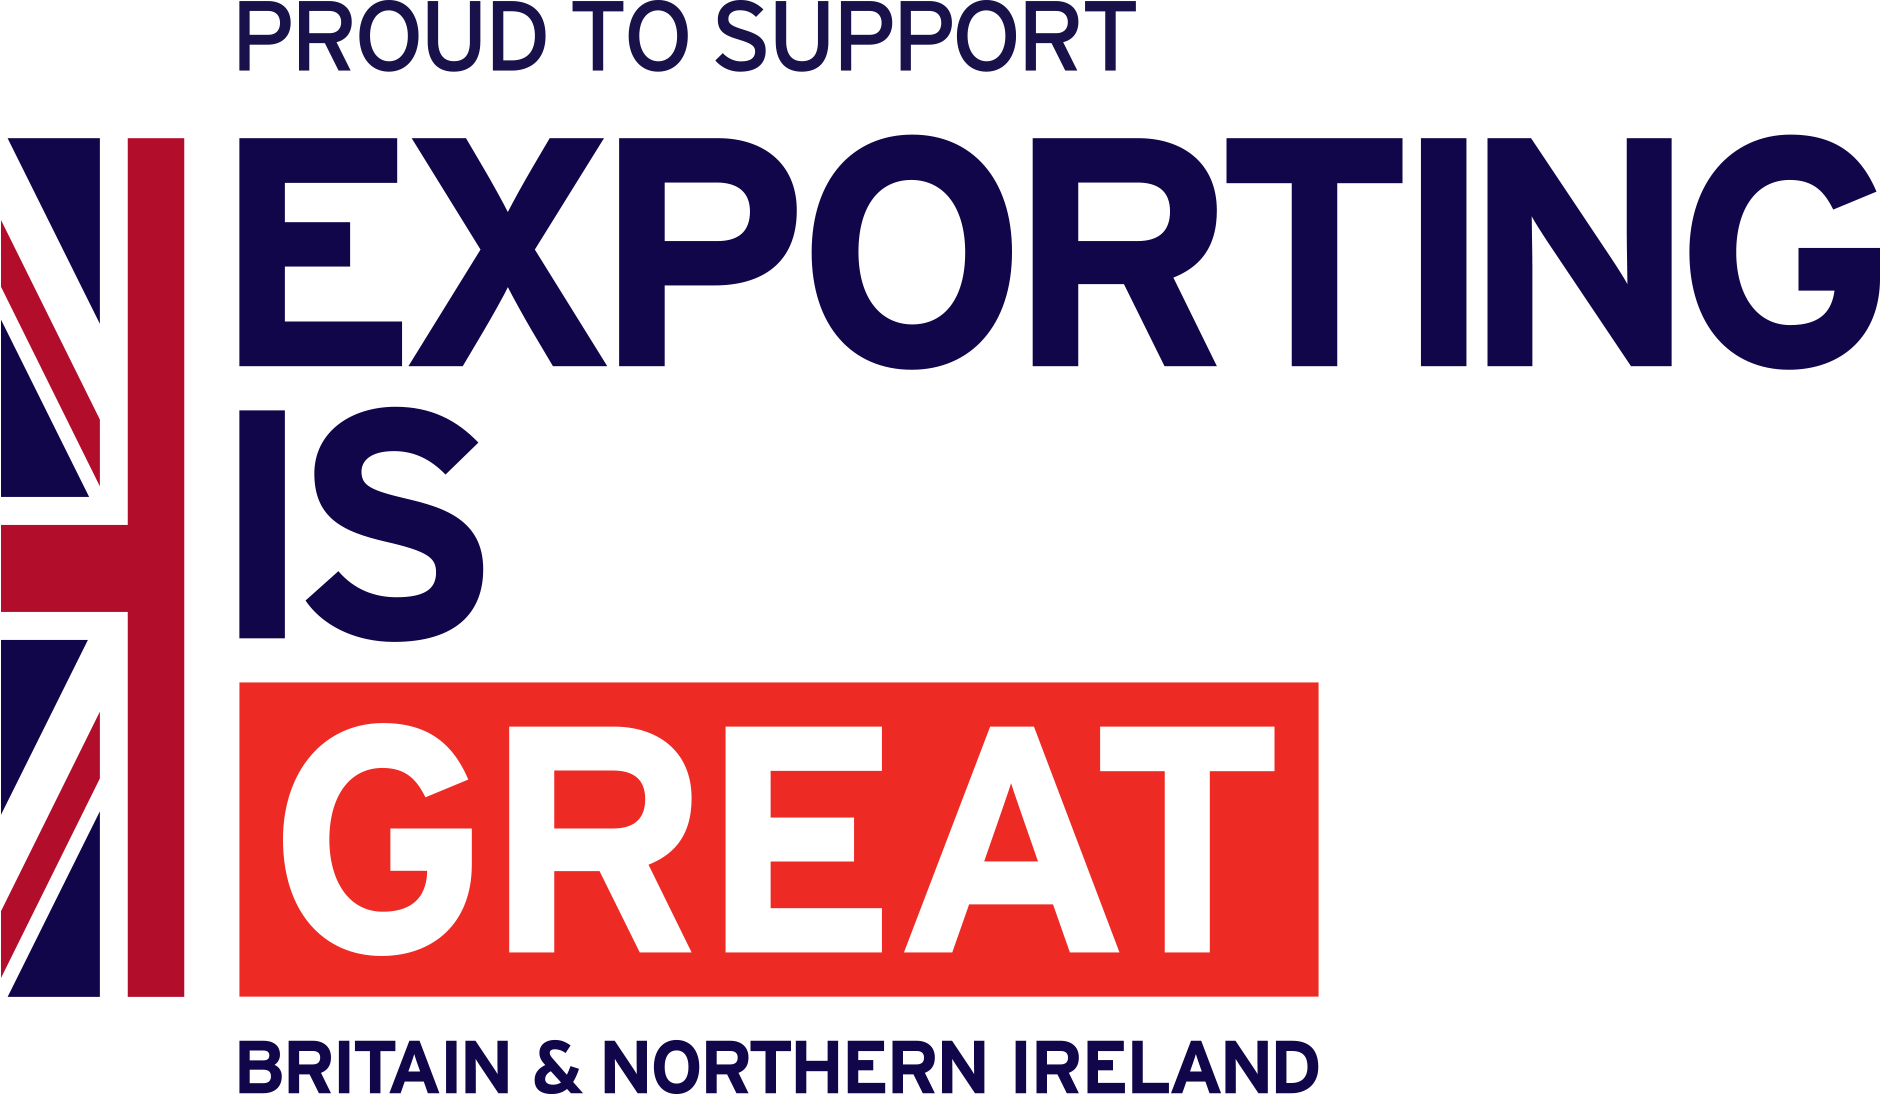 Exporting is Great - Department for International Trade